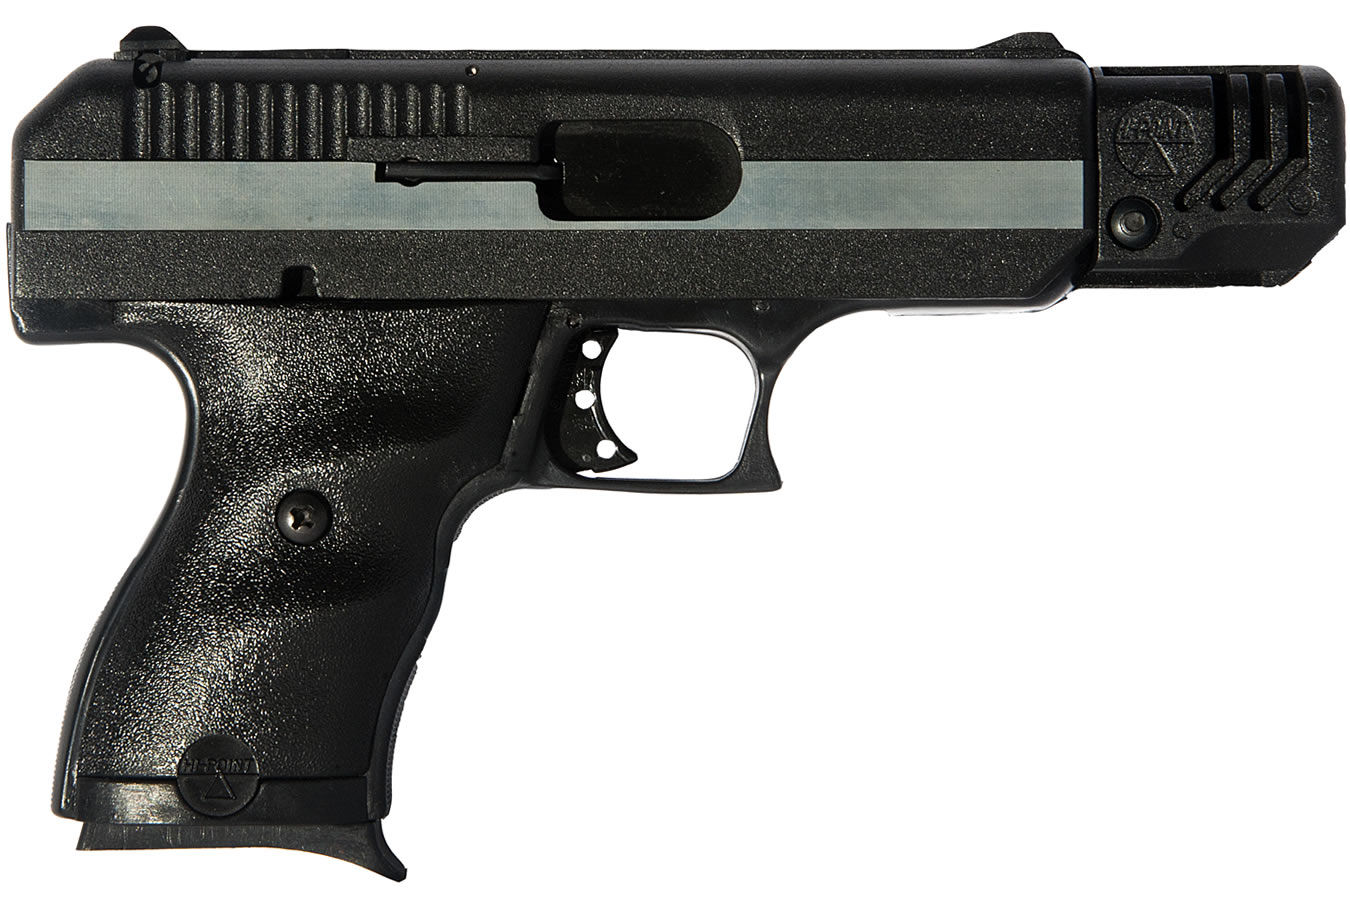 CF-380 380ACP High-Impact Polymer Frame Pistol with Compensator